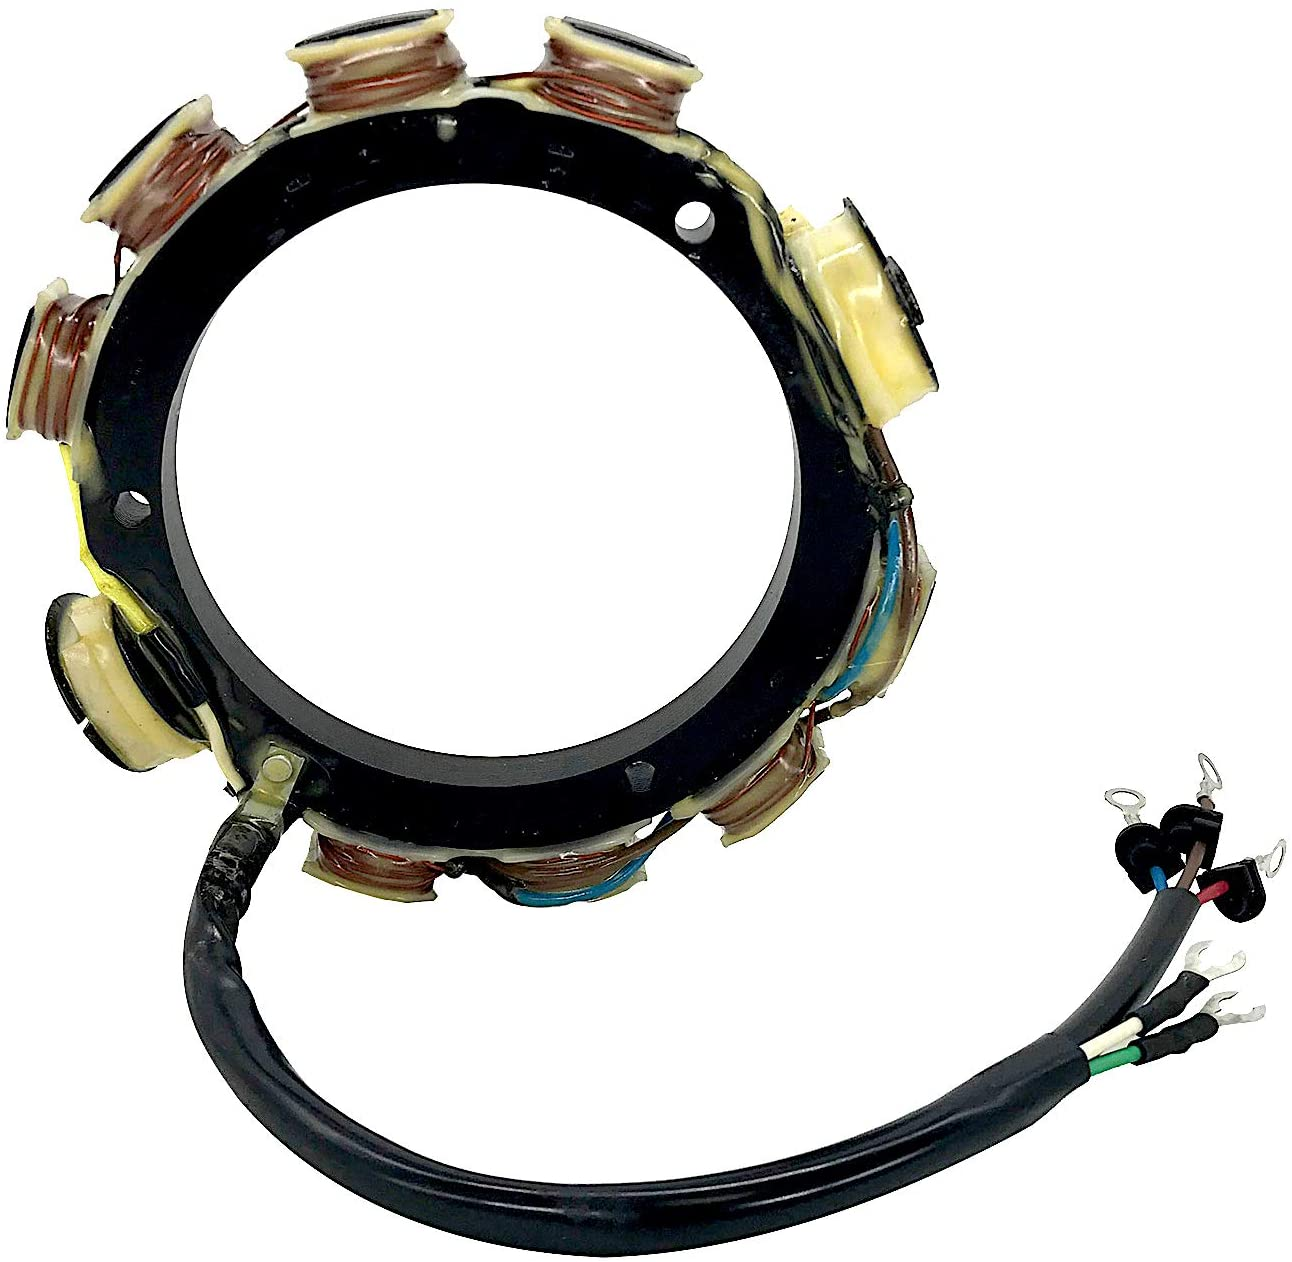 Jetunit Outboard Stator 15AMP 3Cyl For YAMAHA 177-688-11 688-85510-10-00 688-85510-11-00 2988-2000 75 85 90 HP